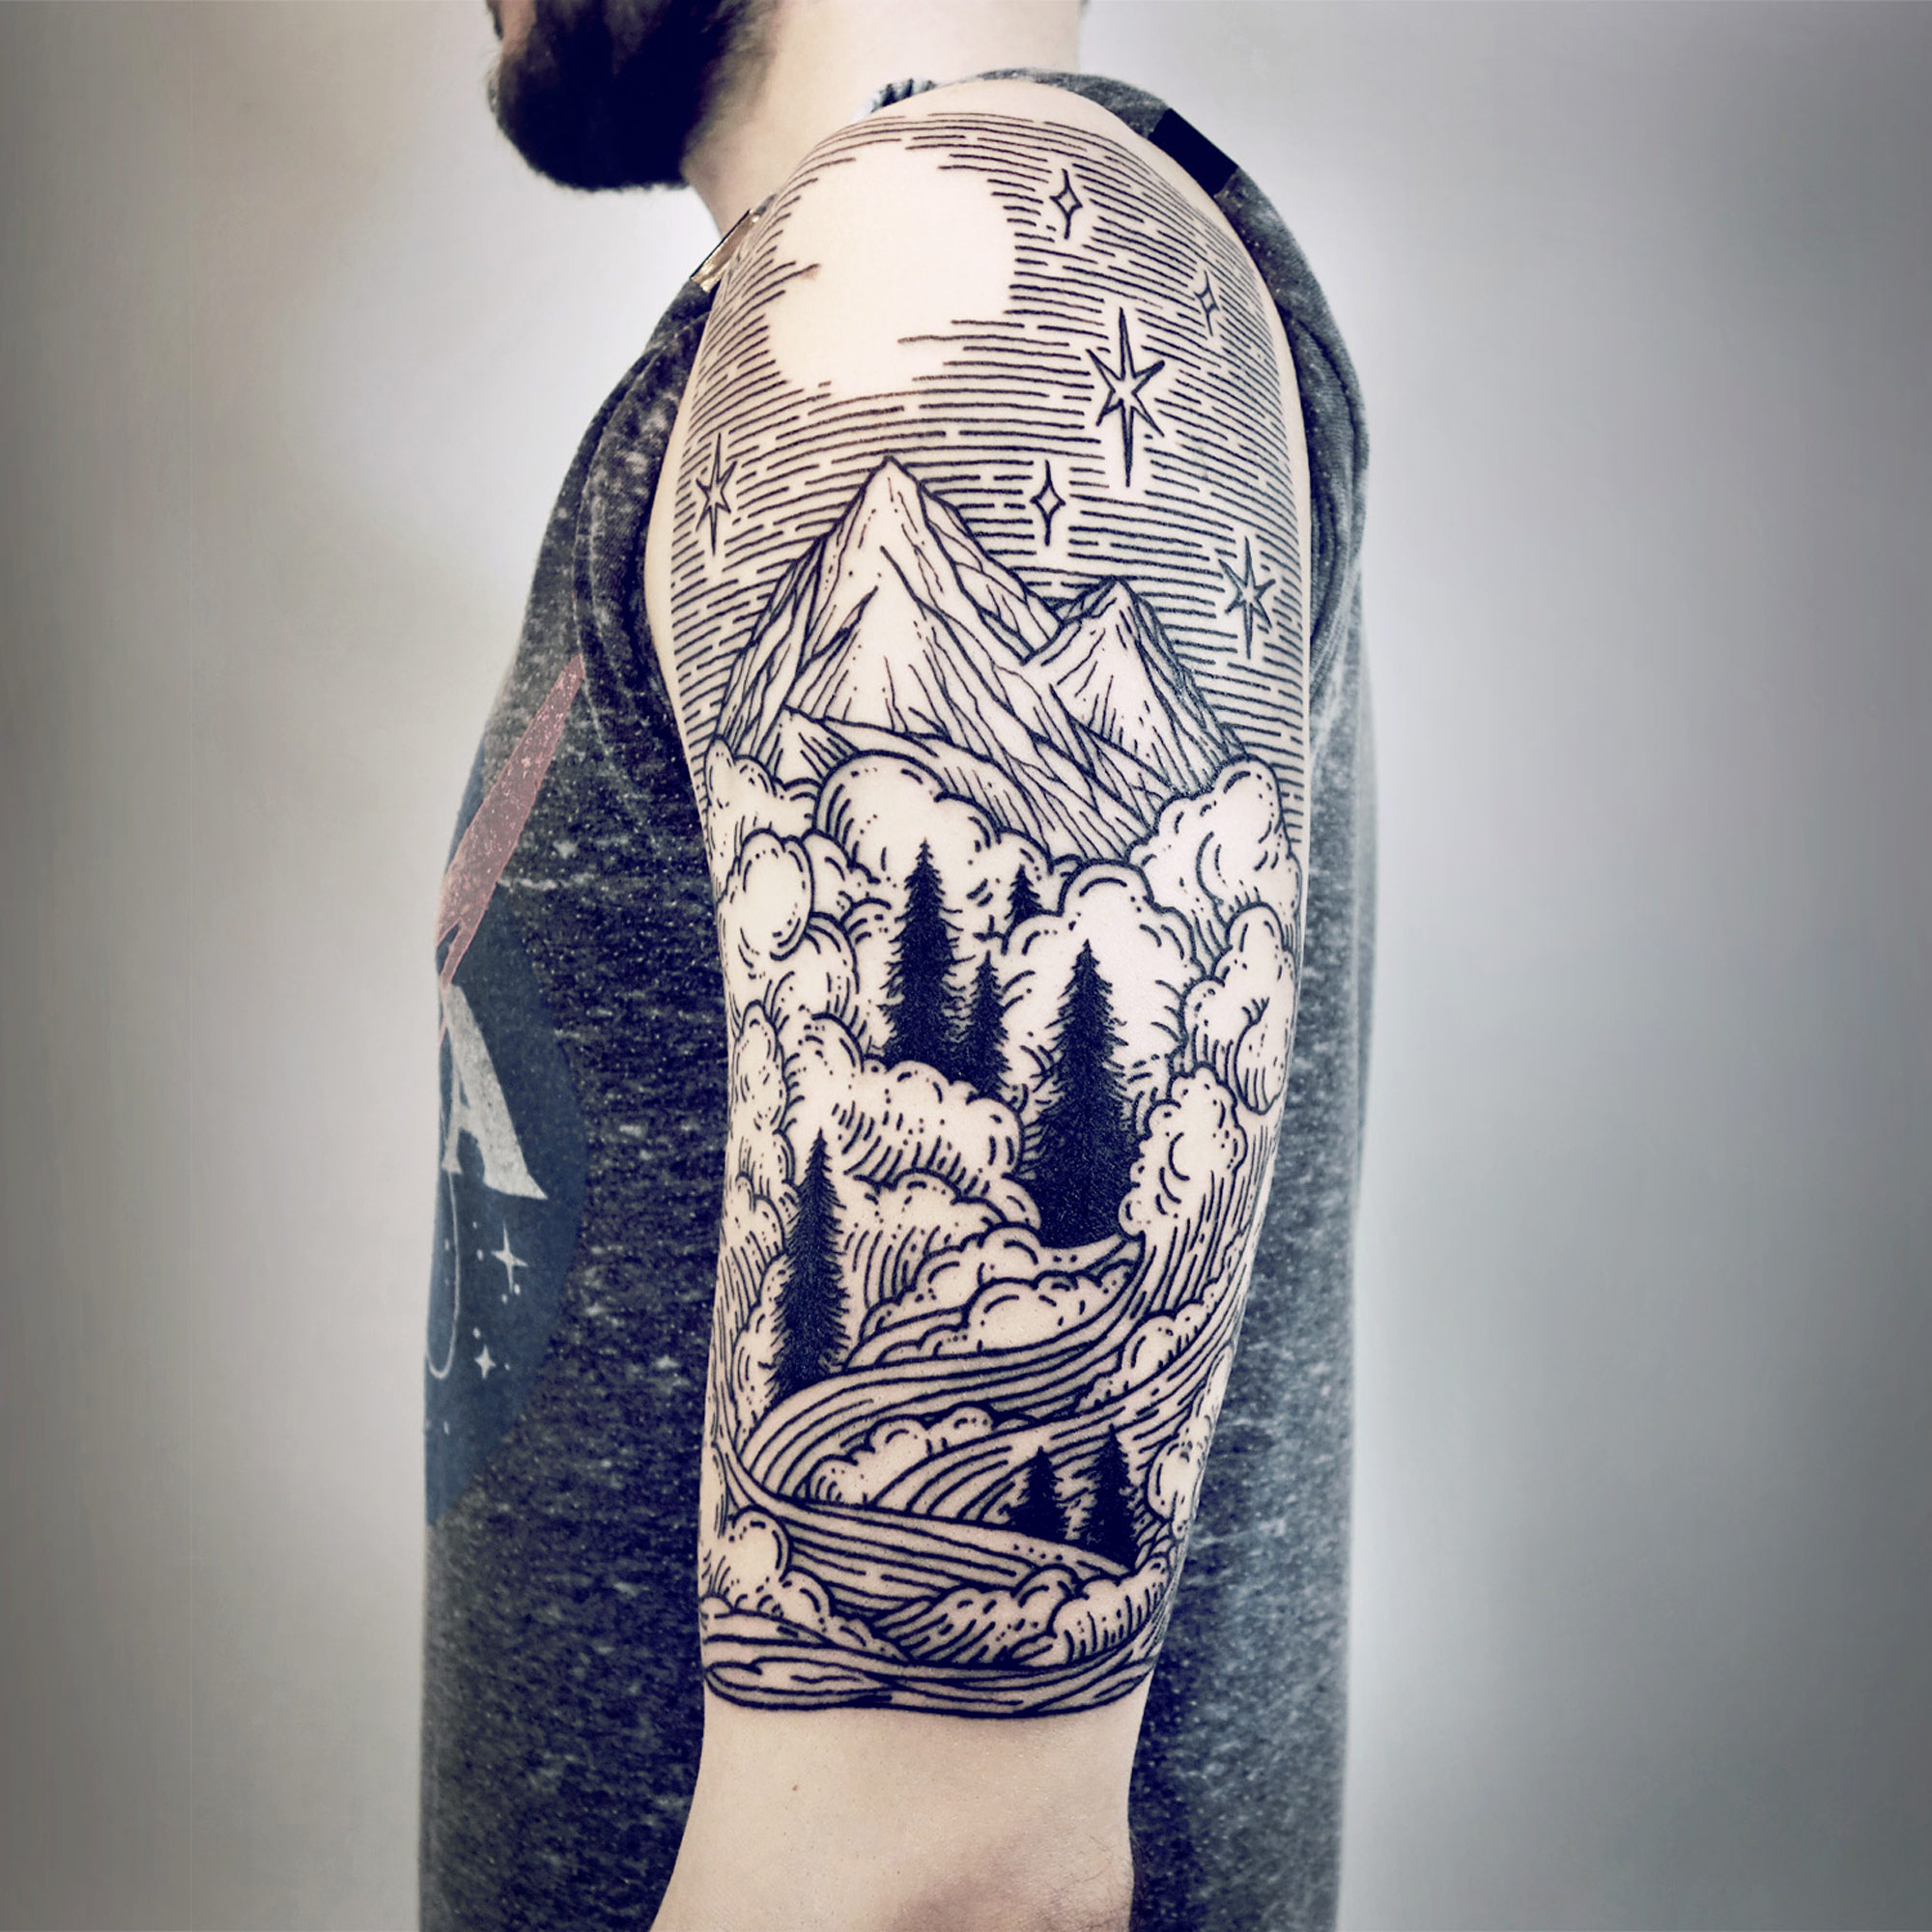 Imaginative Half-Sleeve Landscape Tattoos by Lisa Orth